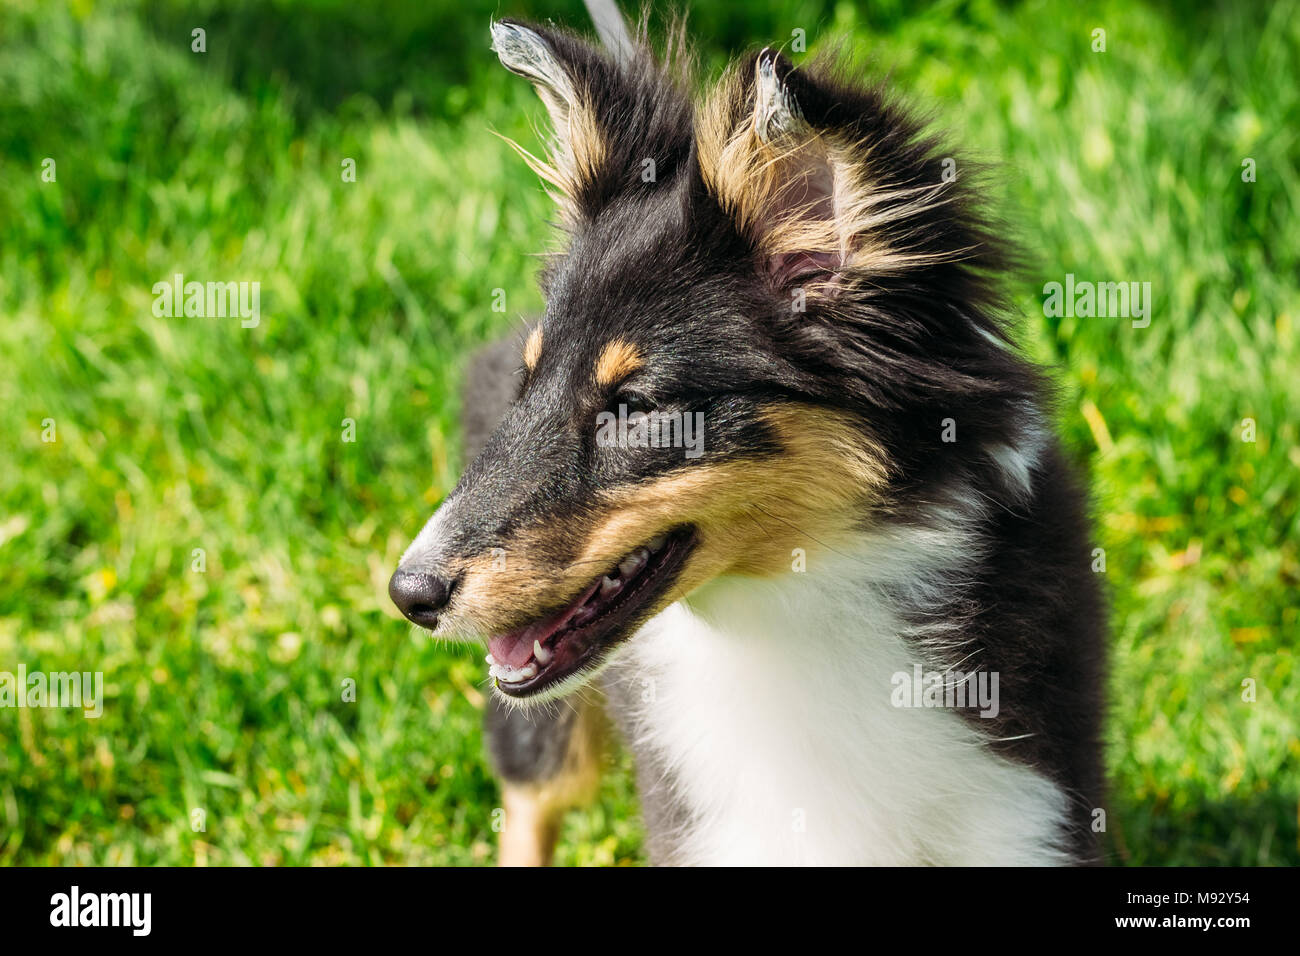 Sheltie puppy close-up. Purebred dog on a background of green grass - Stock Image